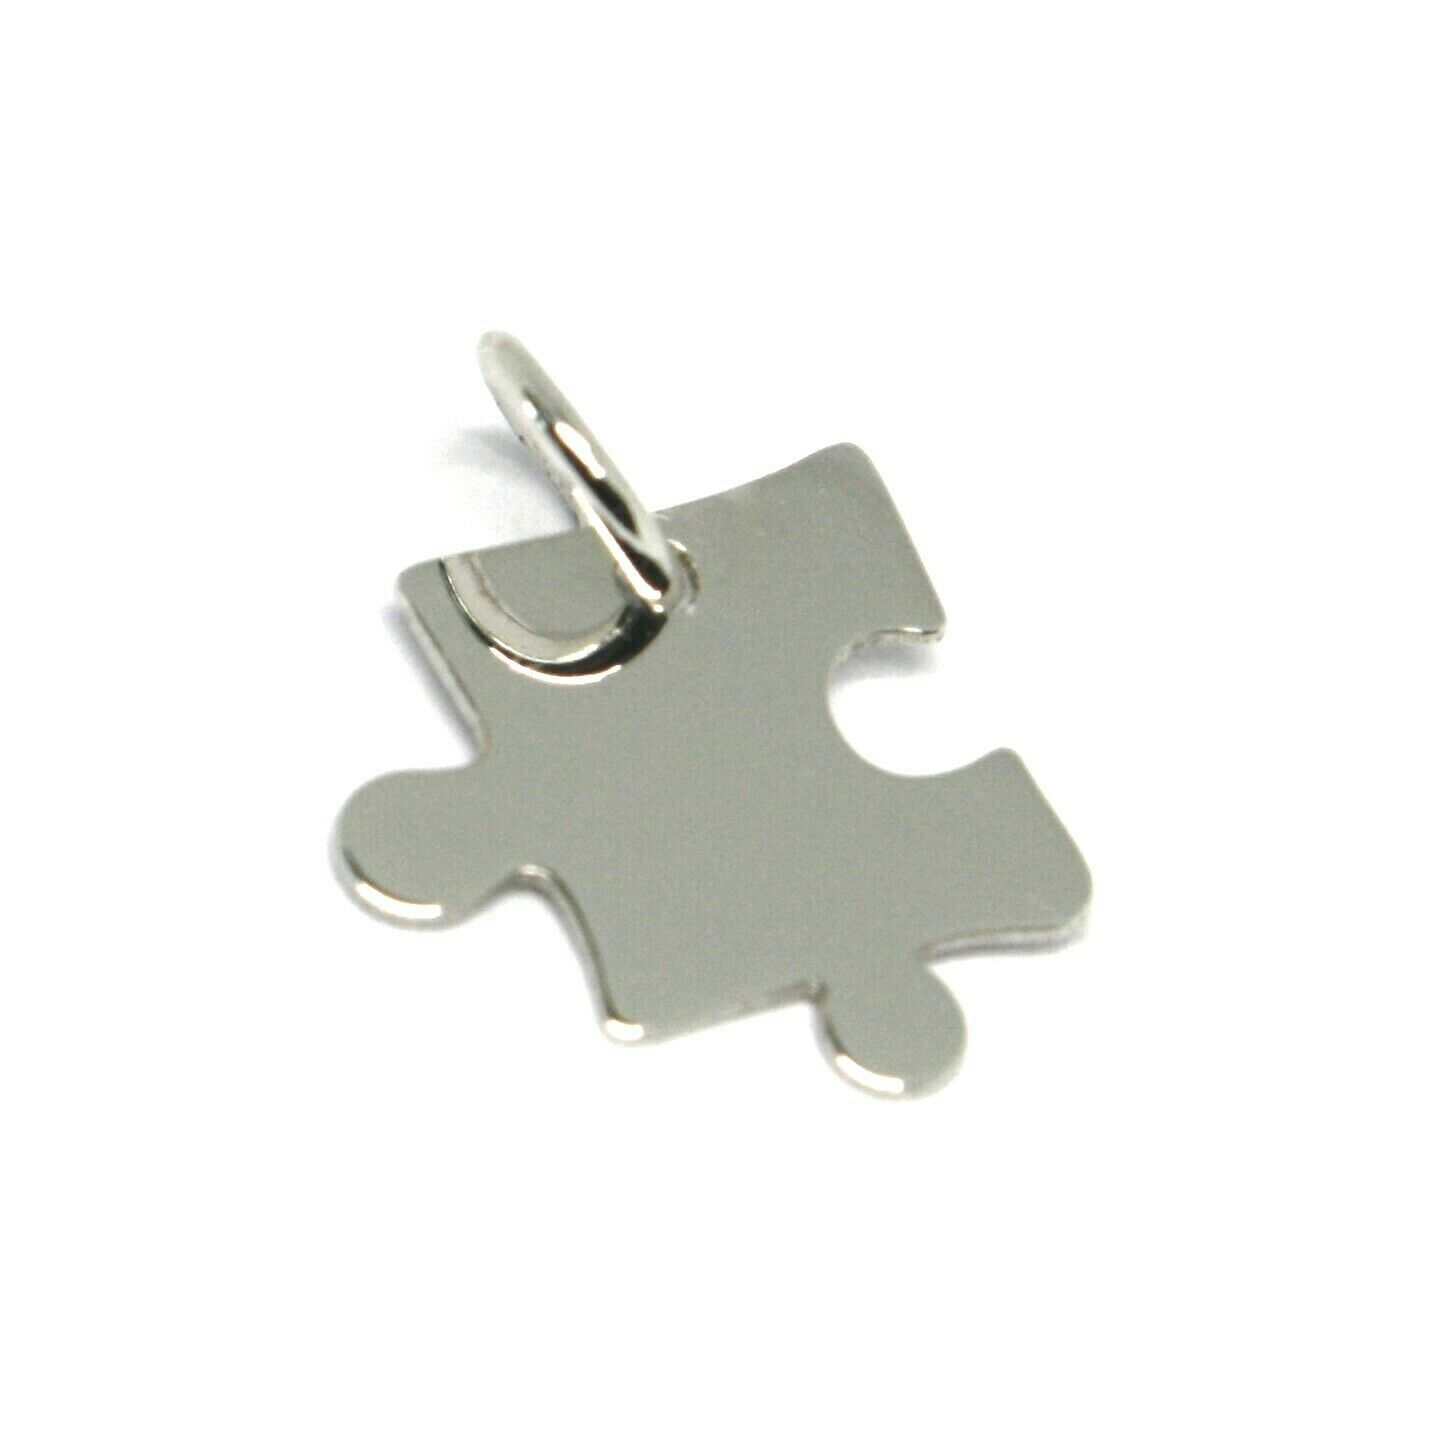 18K WHITE GOLD CHARM PENDANT, MINI PUZZLE PIECE, FLAT, MADE IN ITALY